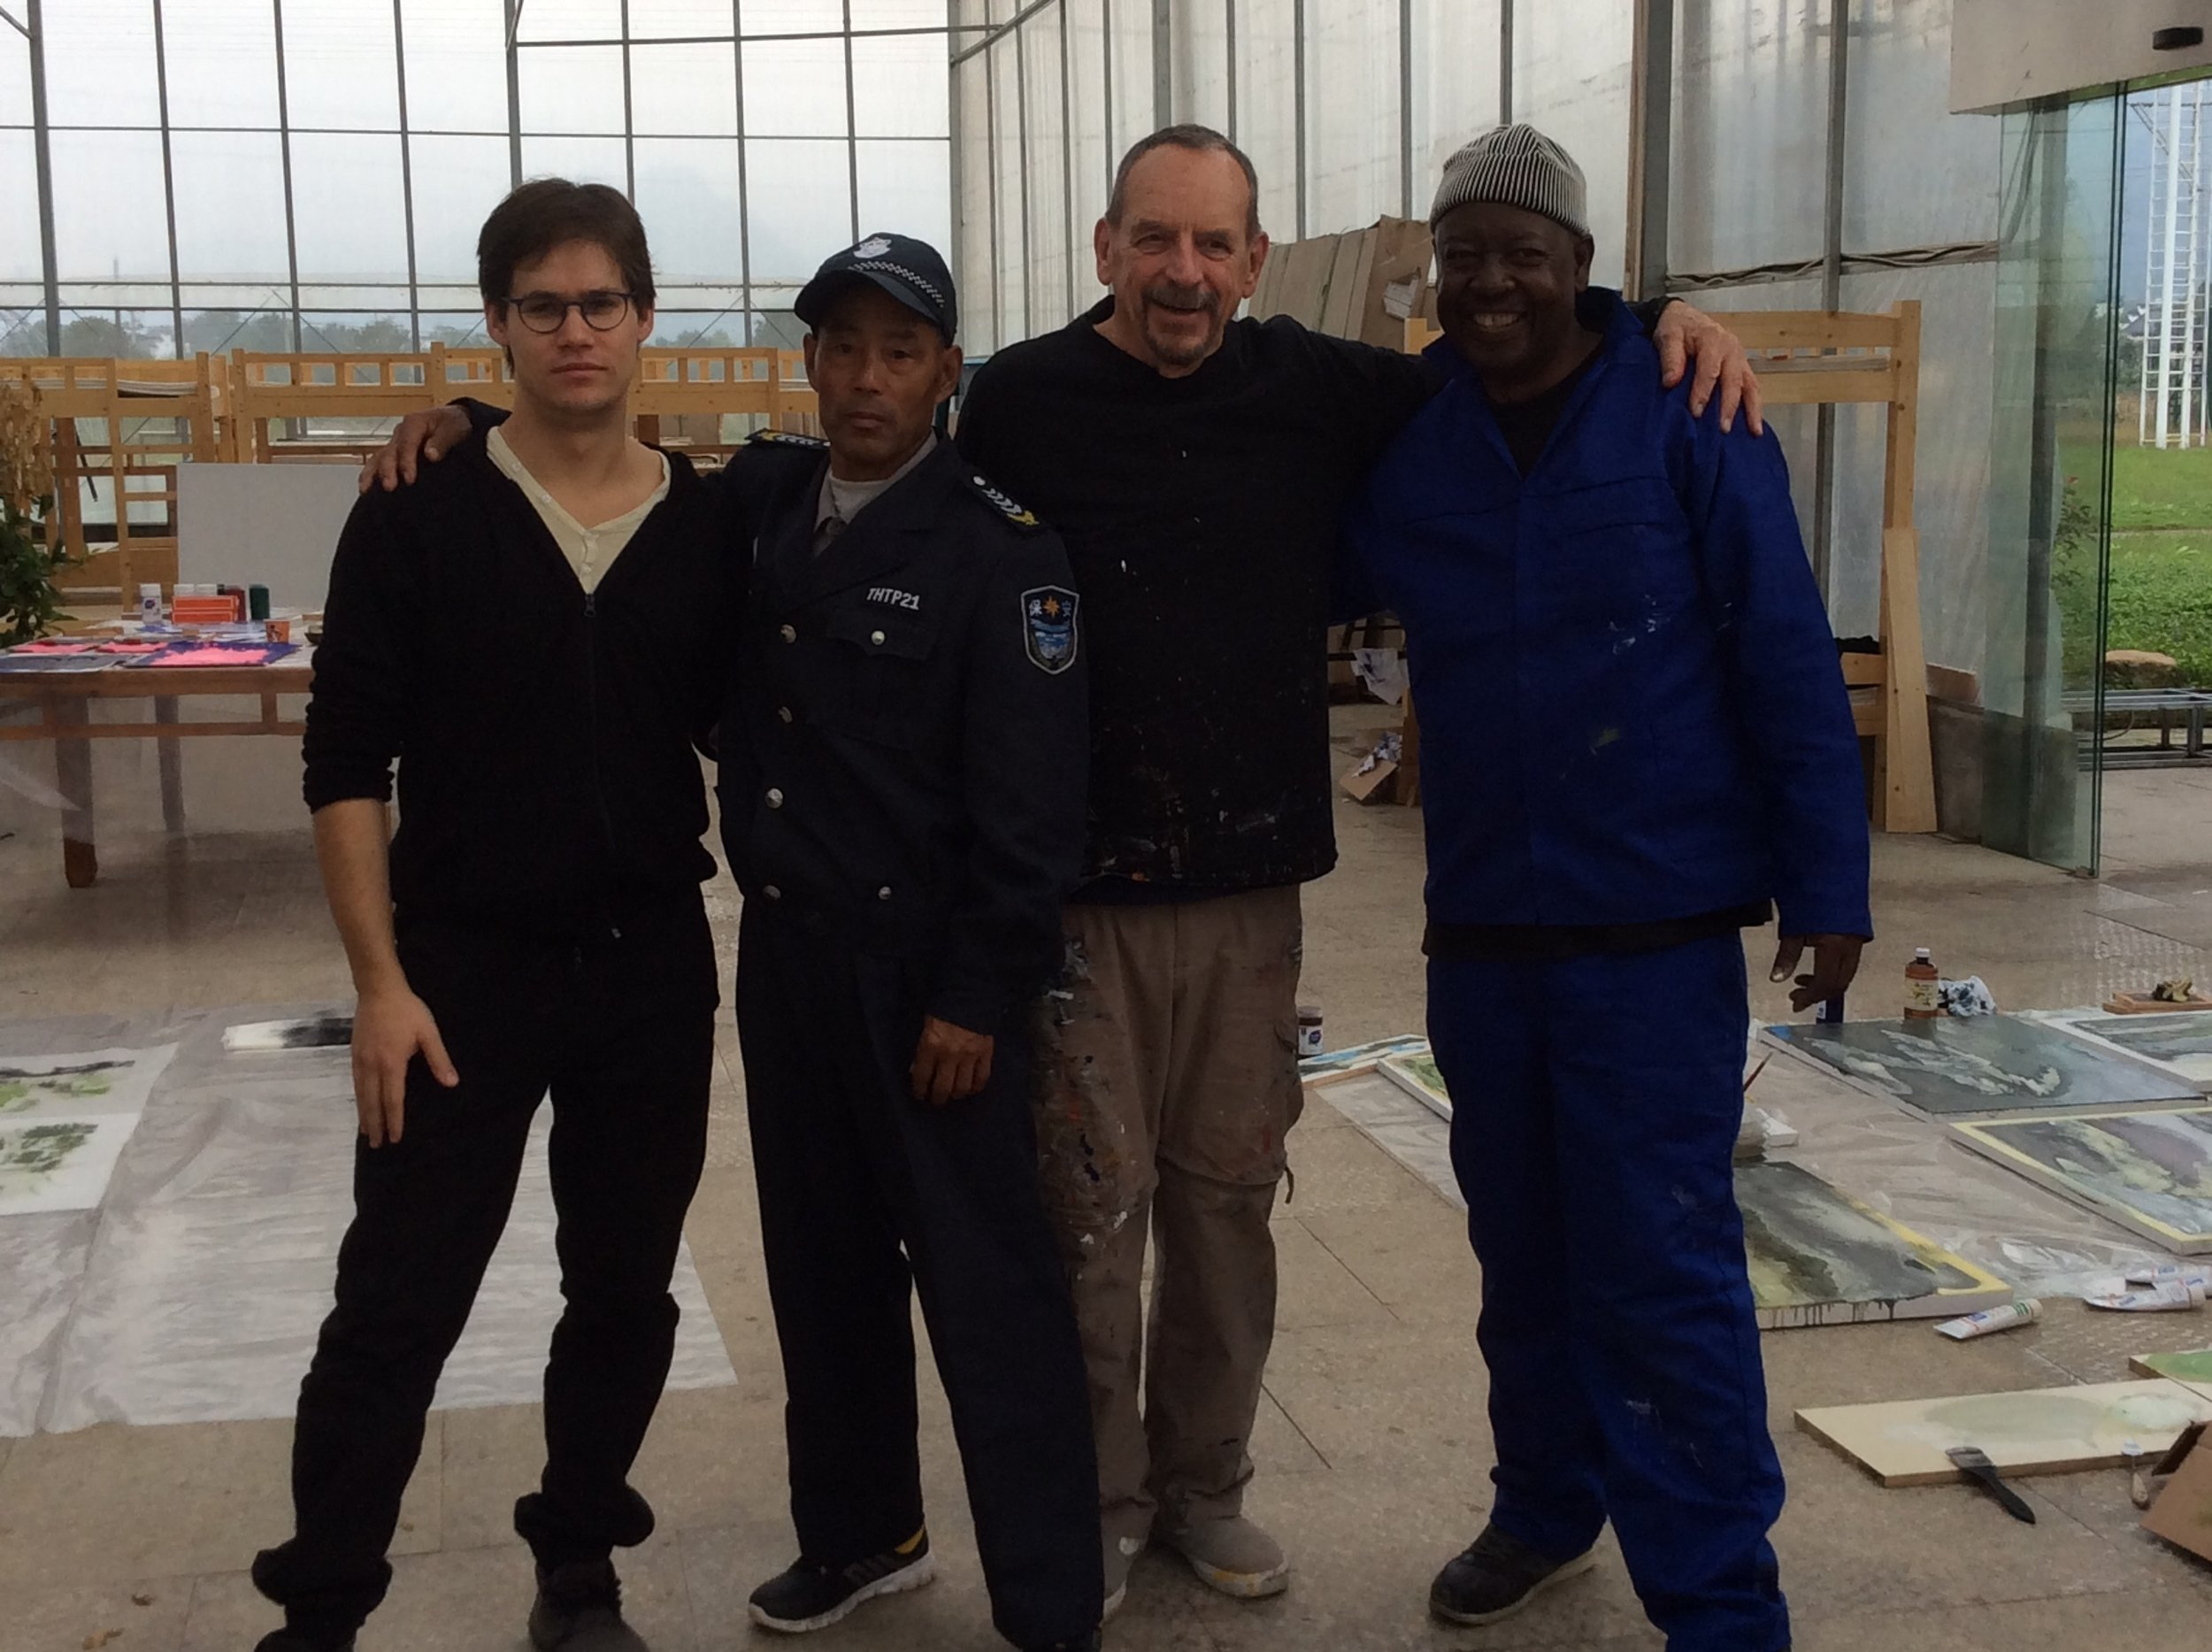 Robert Scott with fellow artists attending the residency program.